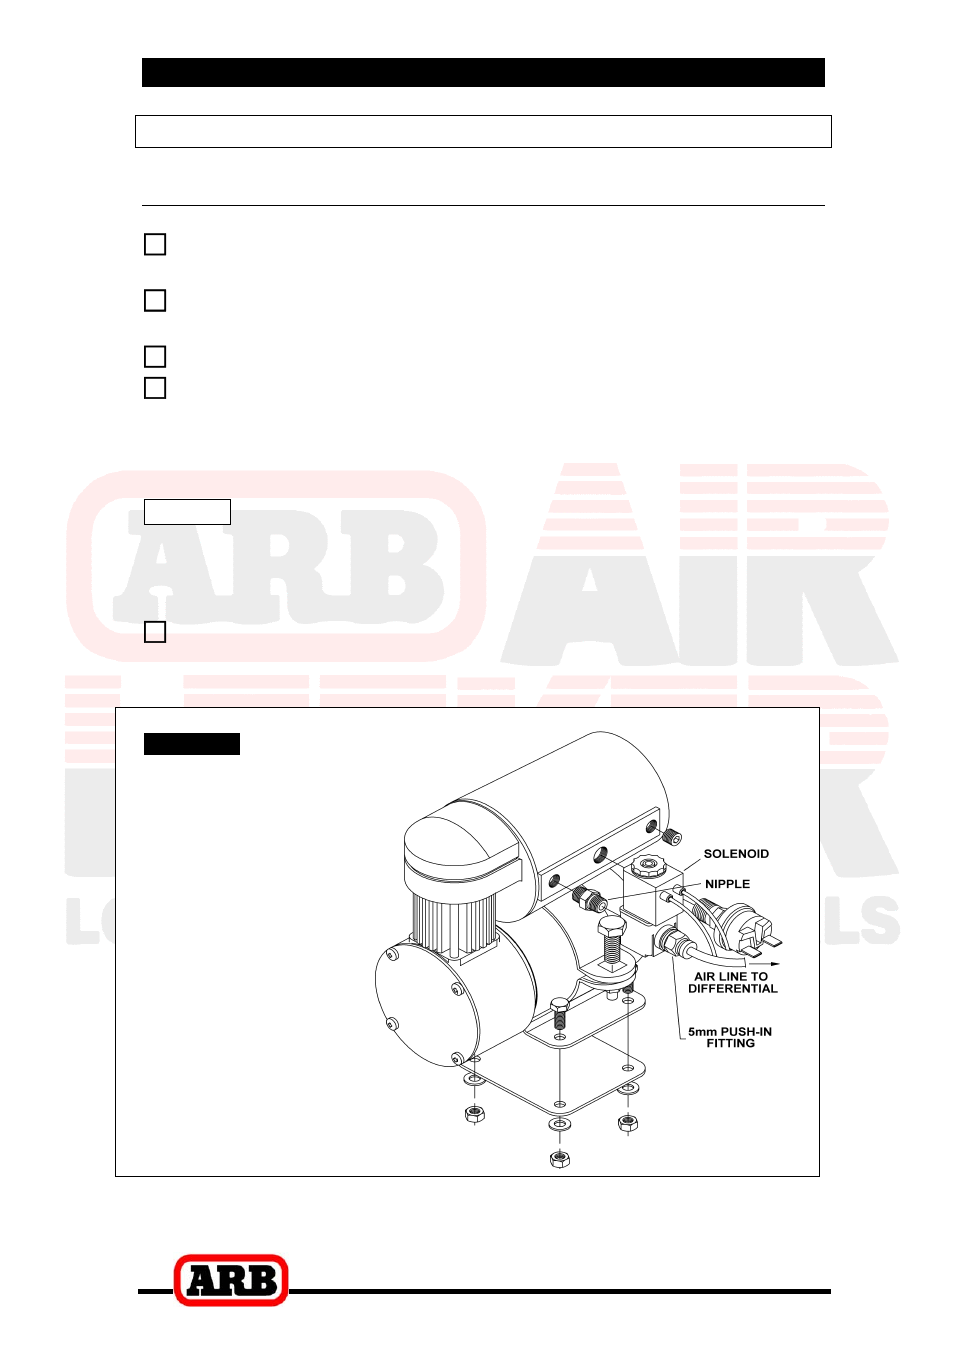 Arb Compressor Schematic Wire Center Wiring Diagram Air Rd142 User Manual Page 24 38 Original Mode Rh Manualsdir Com Locker